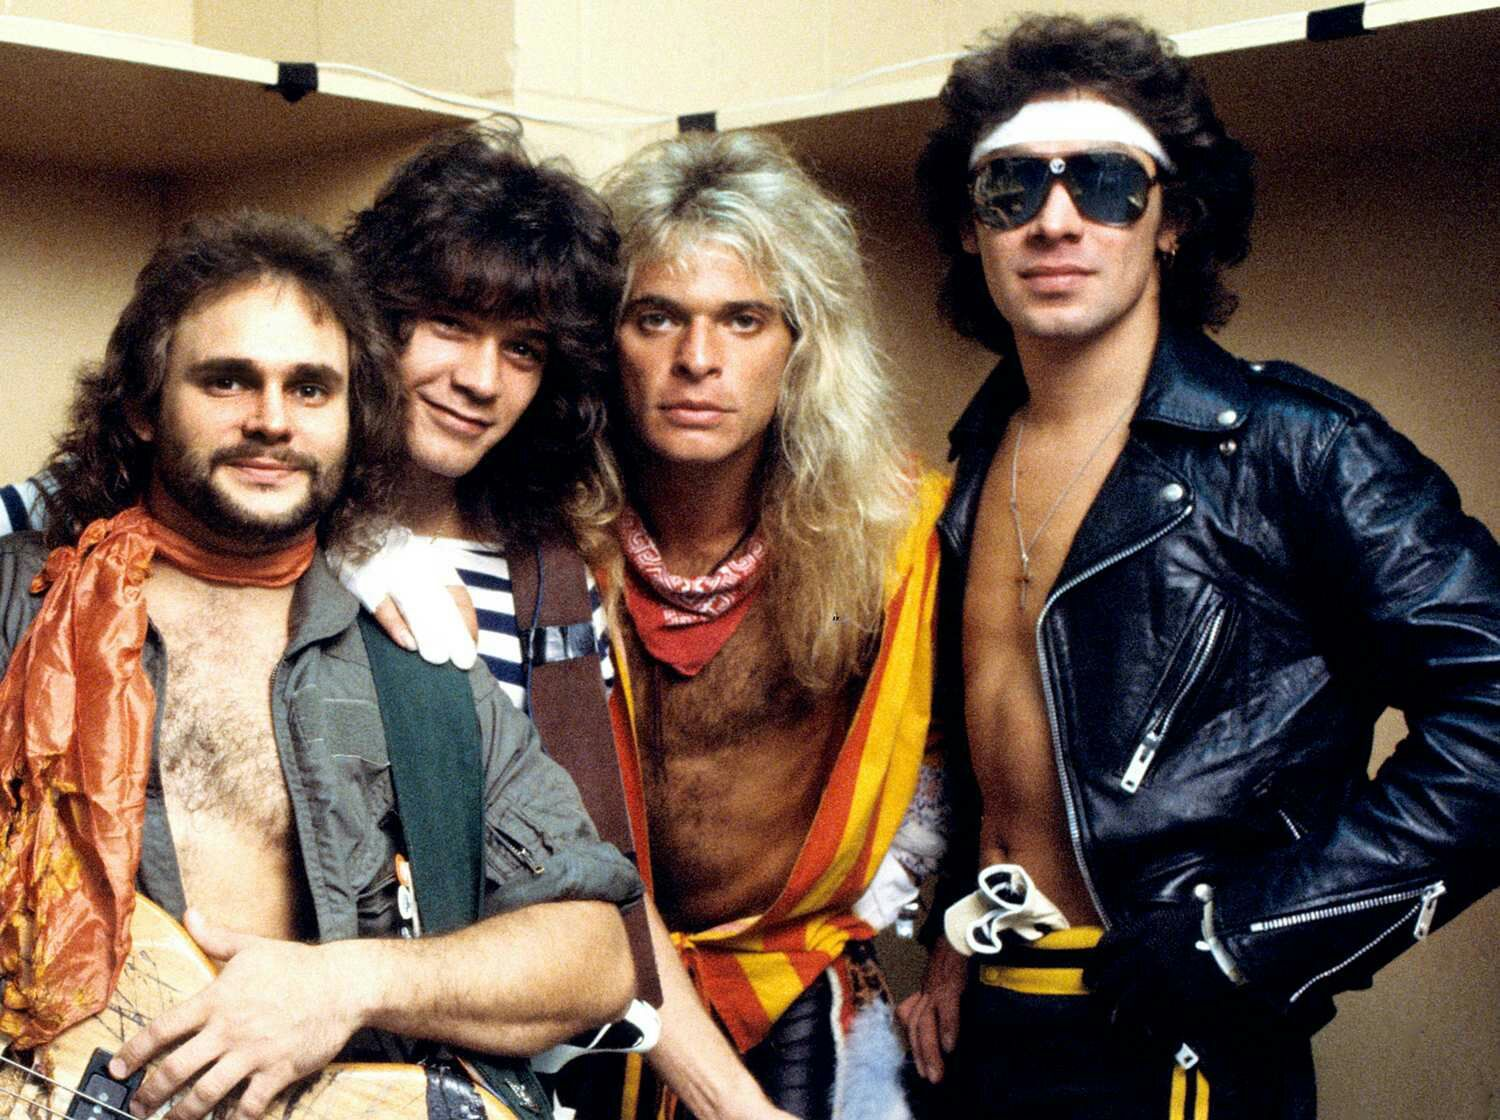 Download Top 10 Best Van Halen Song With High Quality Audio Free Download Songs Rock Pop Metal Blues Hip Hop Jazz Reggae Country